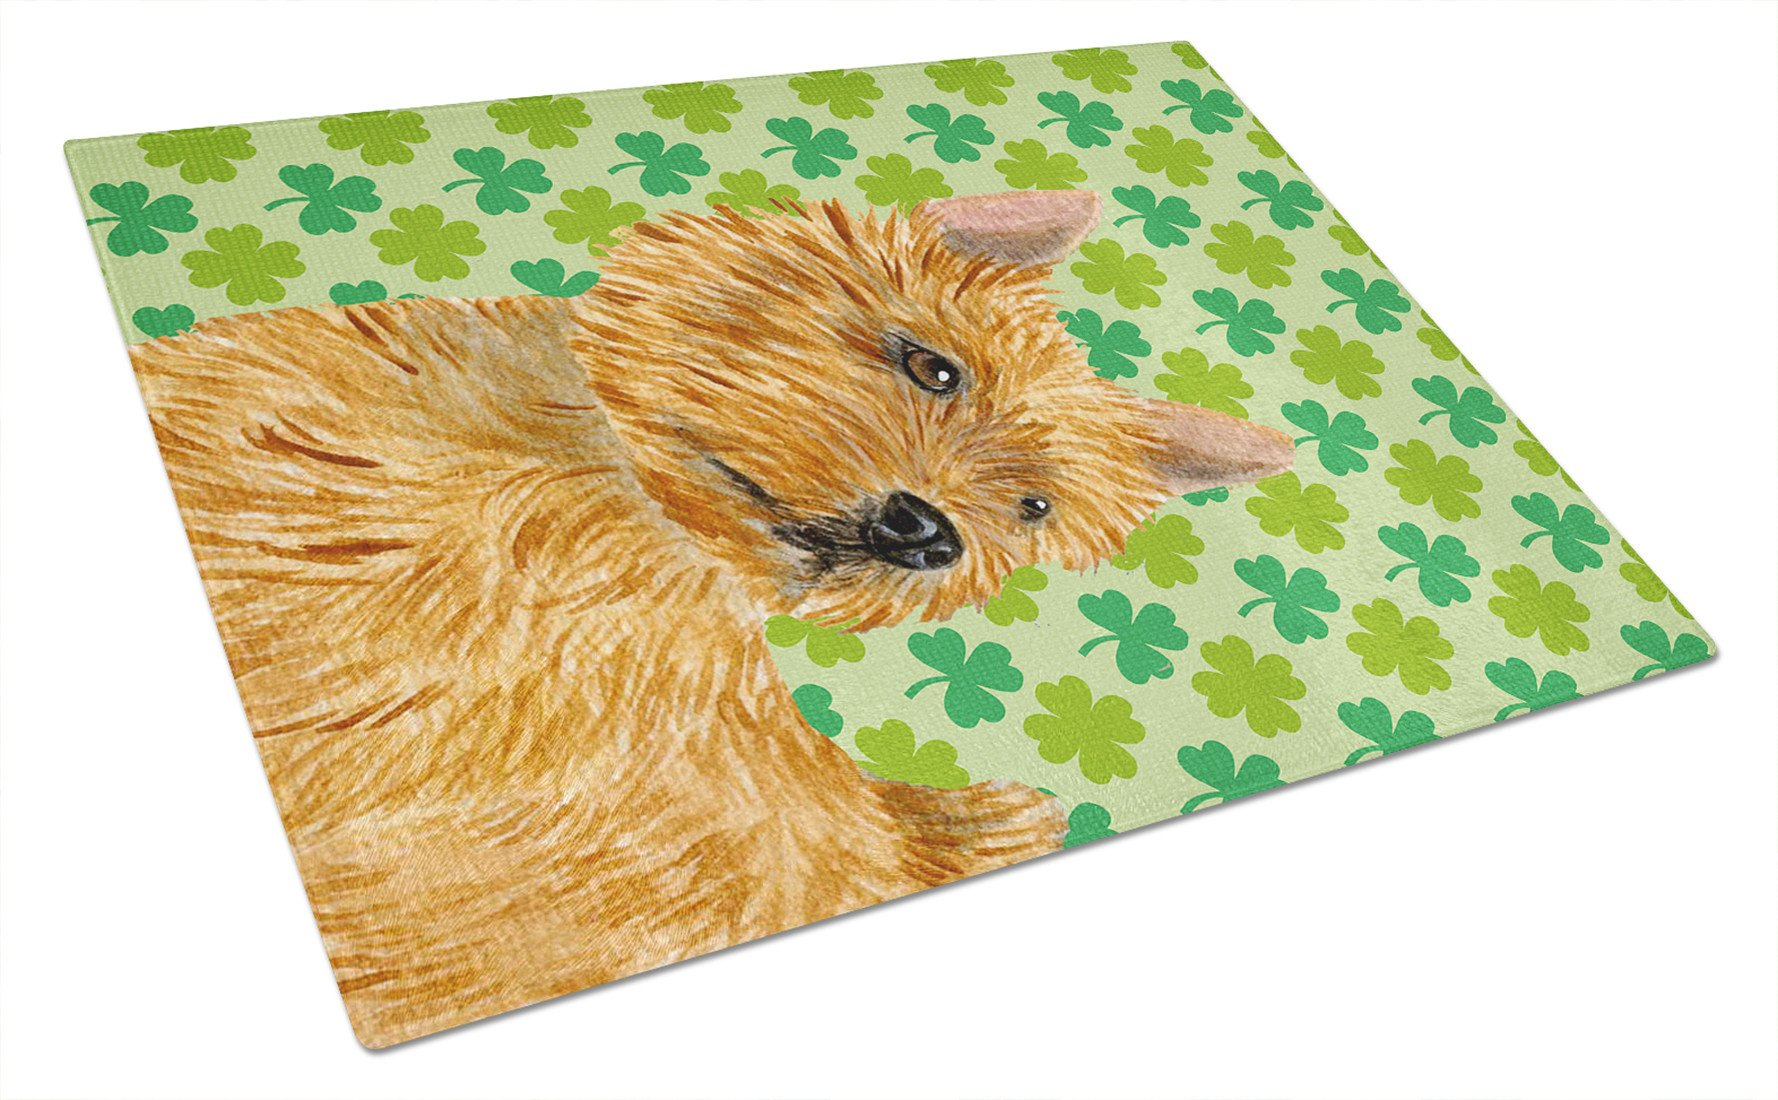 Norwich Terrier St. Patrick's Day Shamrock Portrait Glass Cutting Board Large by Caroline's Treasures